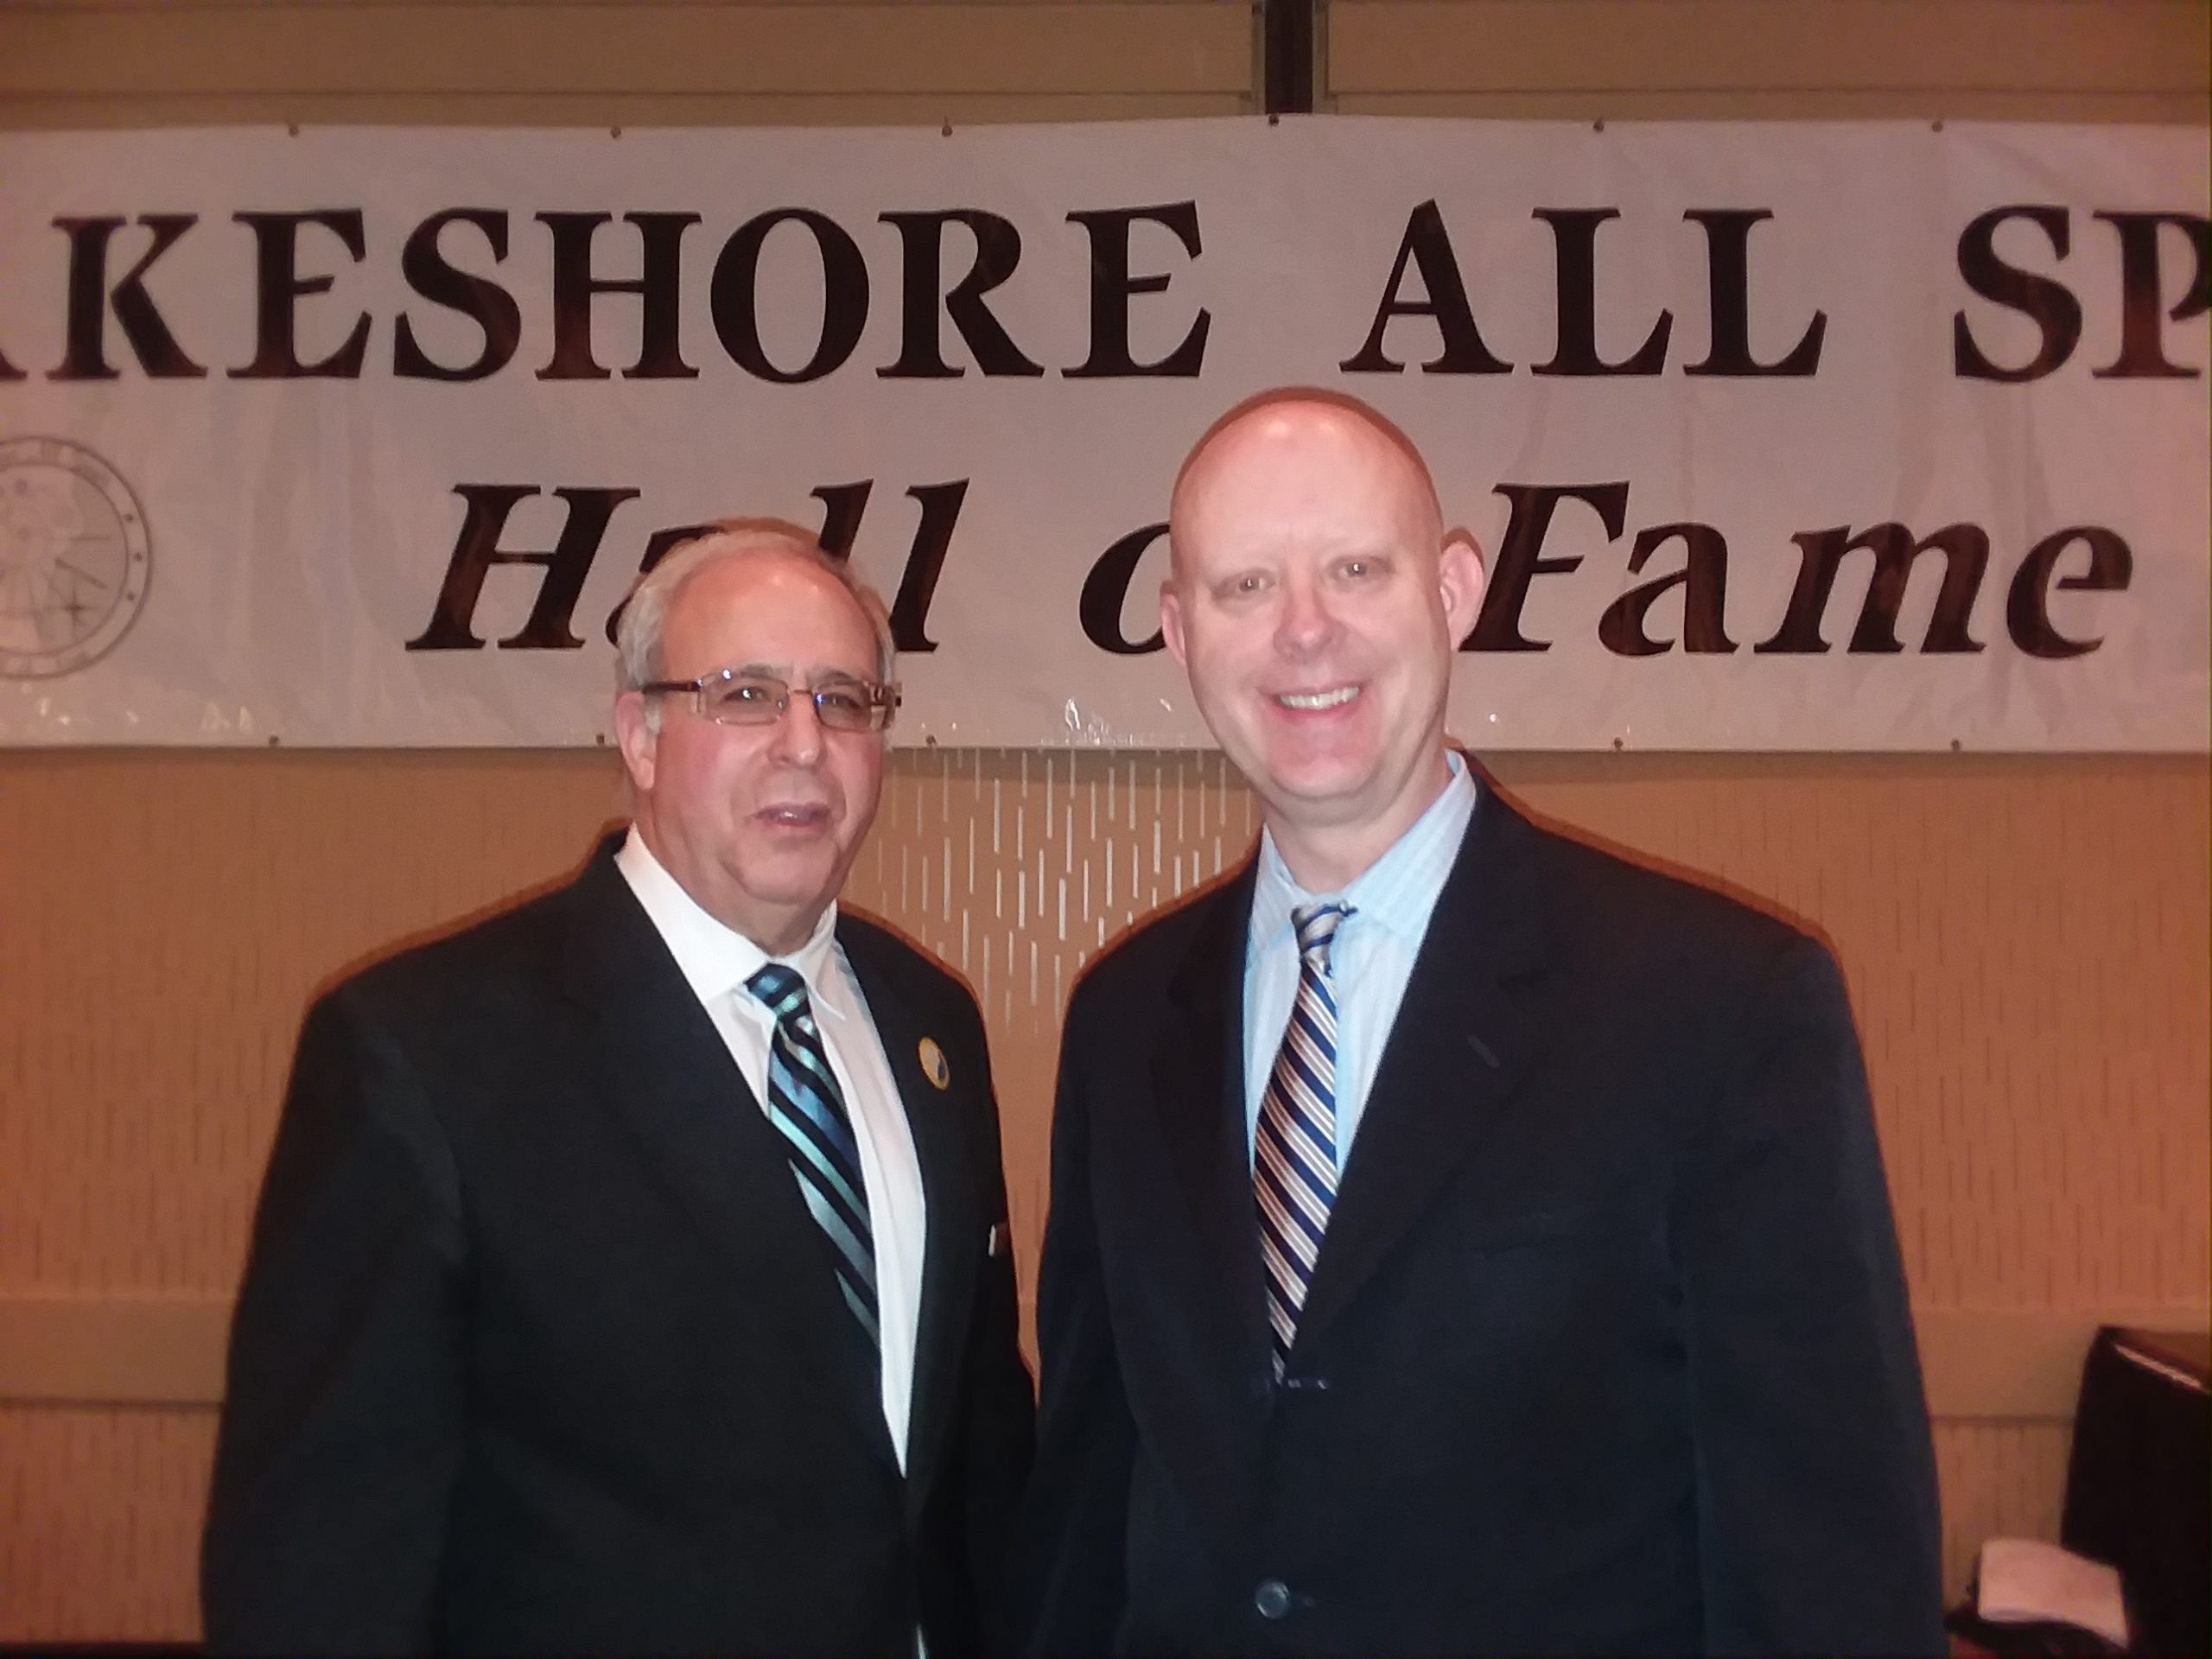 Lakeshore All Sports Hall of Fame Banquet Held Last Night